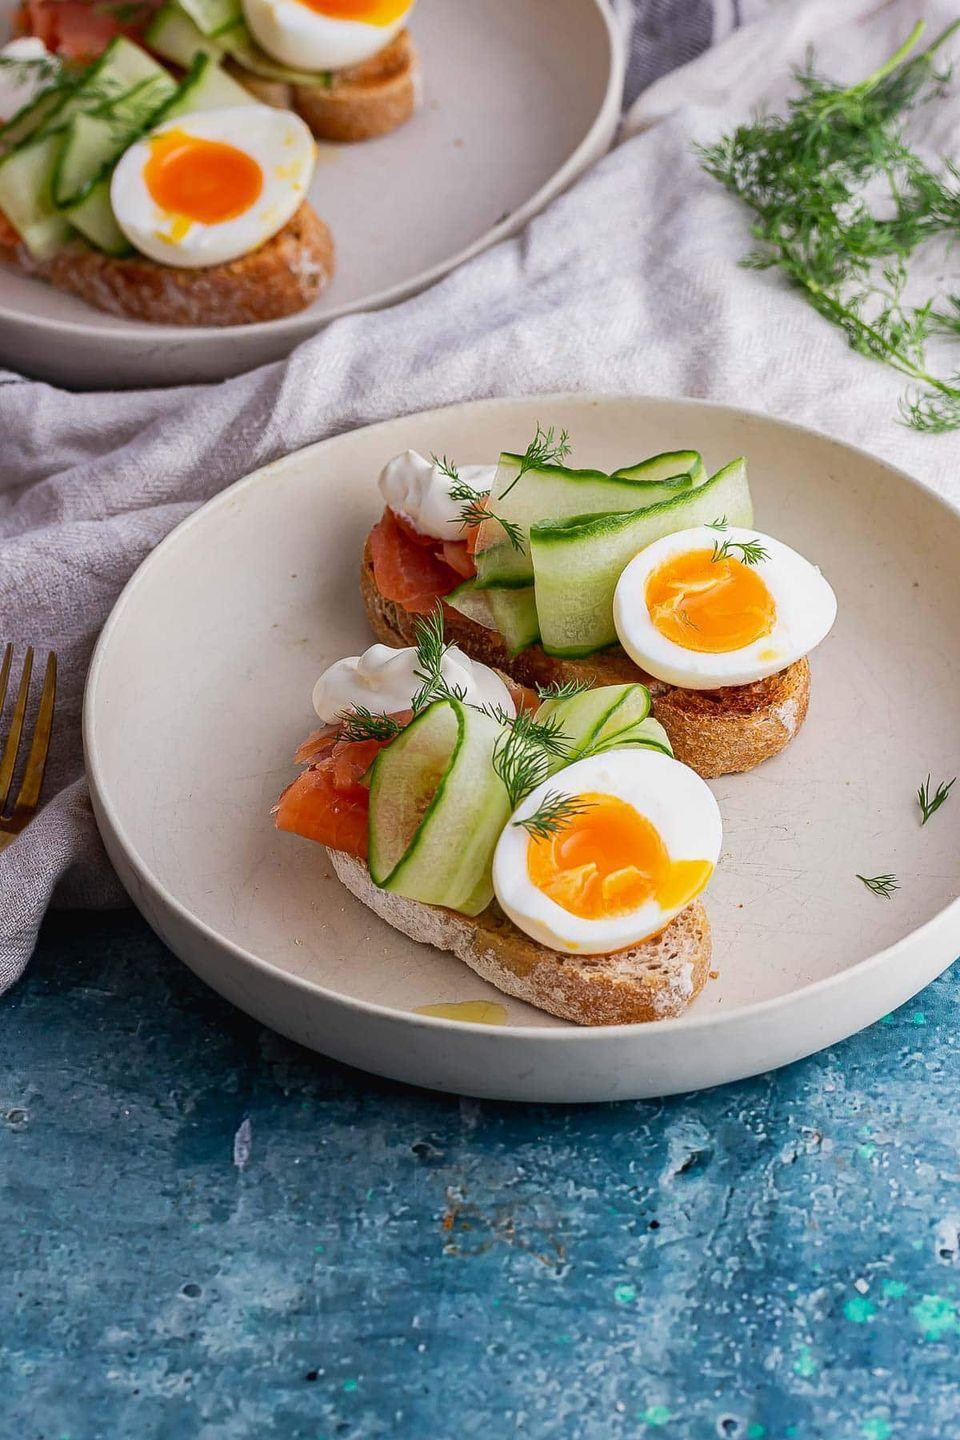 """<p>Crunchy toast, fresh smoked salmon, cucumber ribbons and creme fraiche, could you think of a more delicious breakfast? </p><p>Get the <a href=""""https://thecookreport.co.uk/smoked-salmon-toasts/"""" rel=""""nofollow noopener"""" target=""""_blank"""" data-ylk=""""slk:Smoked Salmon Toasts with Cucumber Ribbons"""" class=""""link rapid-noclick-resp"""">Smoked Salmon Toasts with Cucumber Ribbons</a> recipe.</p><p>Recipe from <a href=""""https://thecookreport.co.uk/"""" rel=""""nofollow noopener"""" target=""""_blank"""" data-ylk=""""slk:The Cook Report"""" class=""""link rapid-noclick-resp"""">The Cook Report</a>.</p>"""